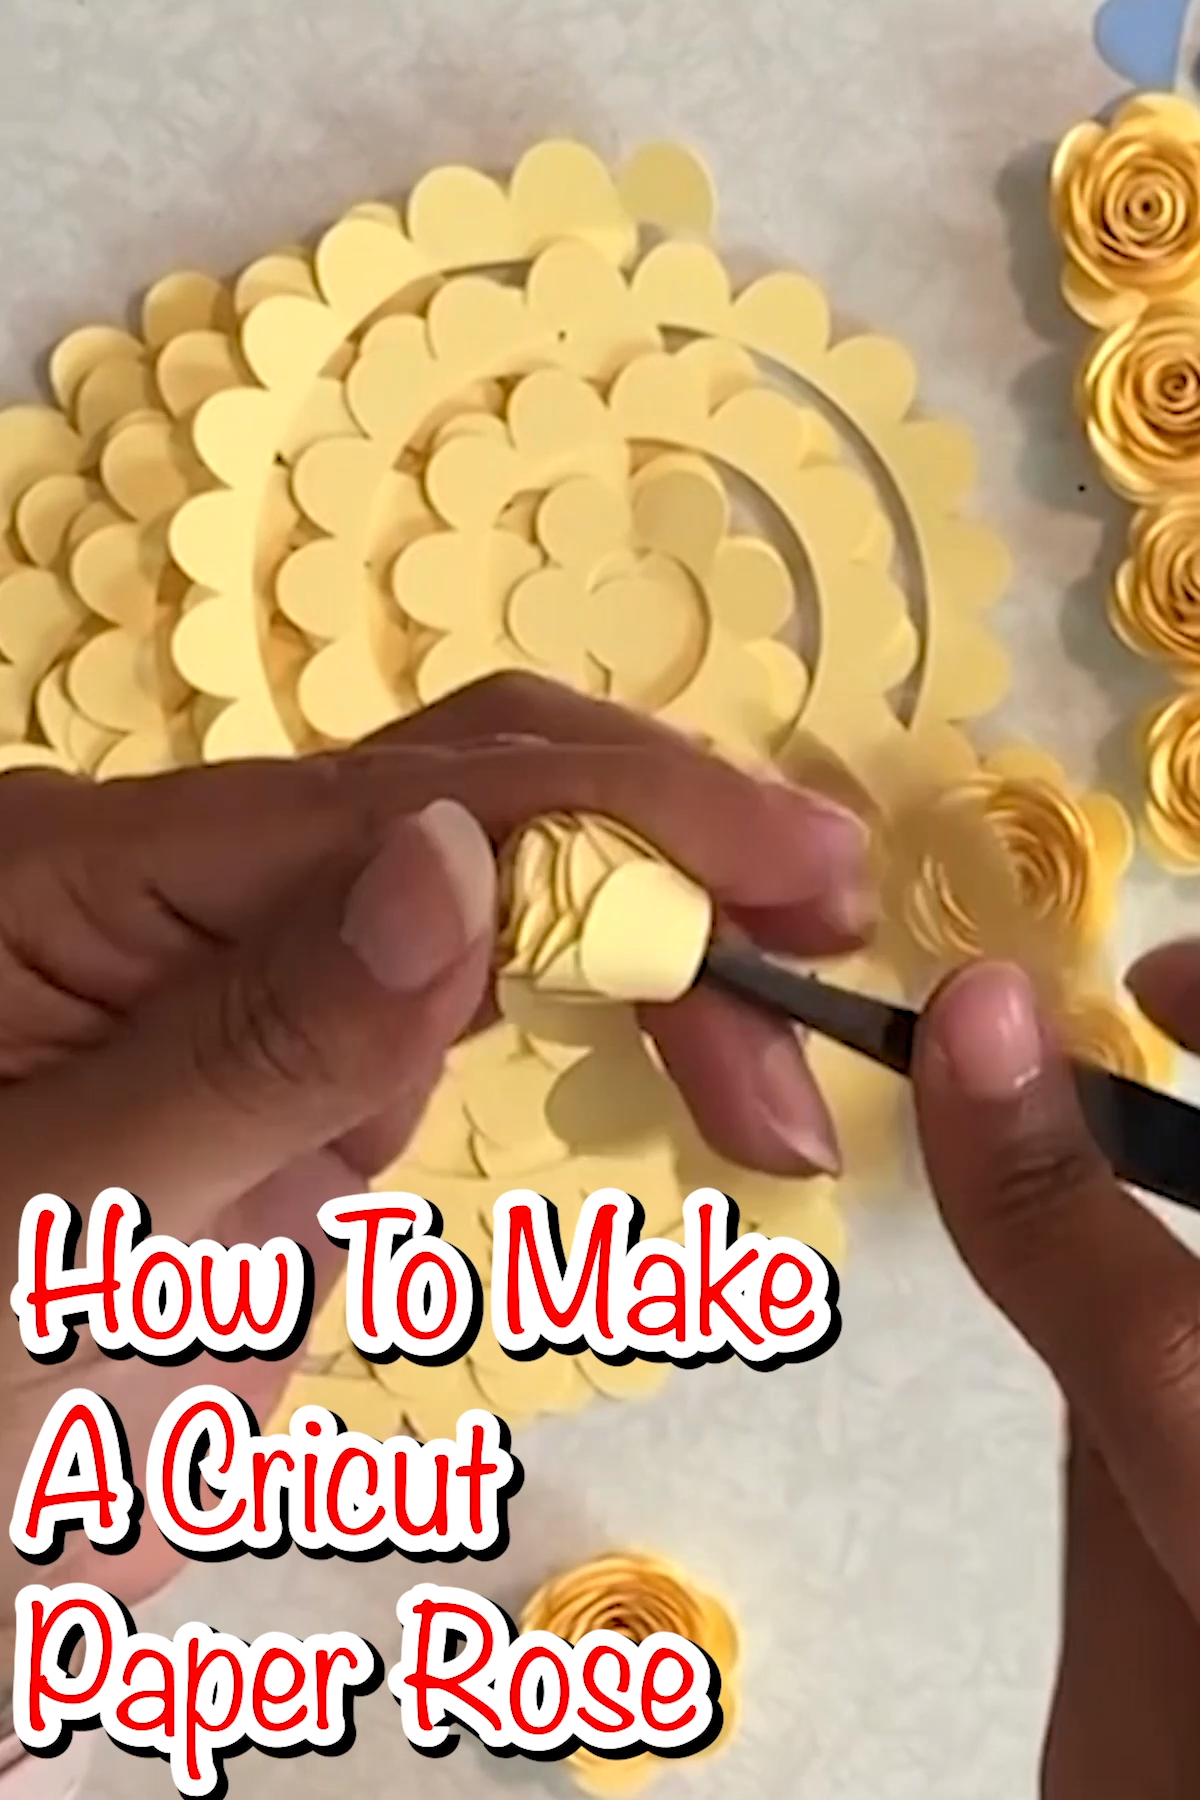 This free paper flower template, coupled with the step by step how to make a paper rose video will teach you how to make a paper rose like a pro. #paperflowers #cricut #cricutmade #freesvgfiles